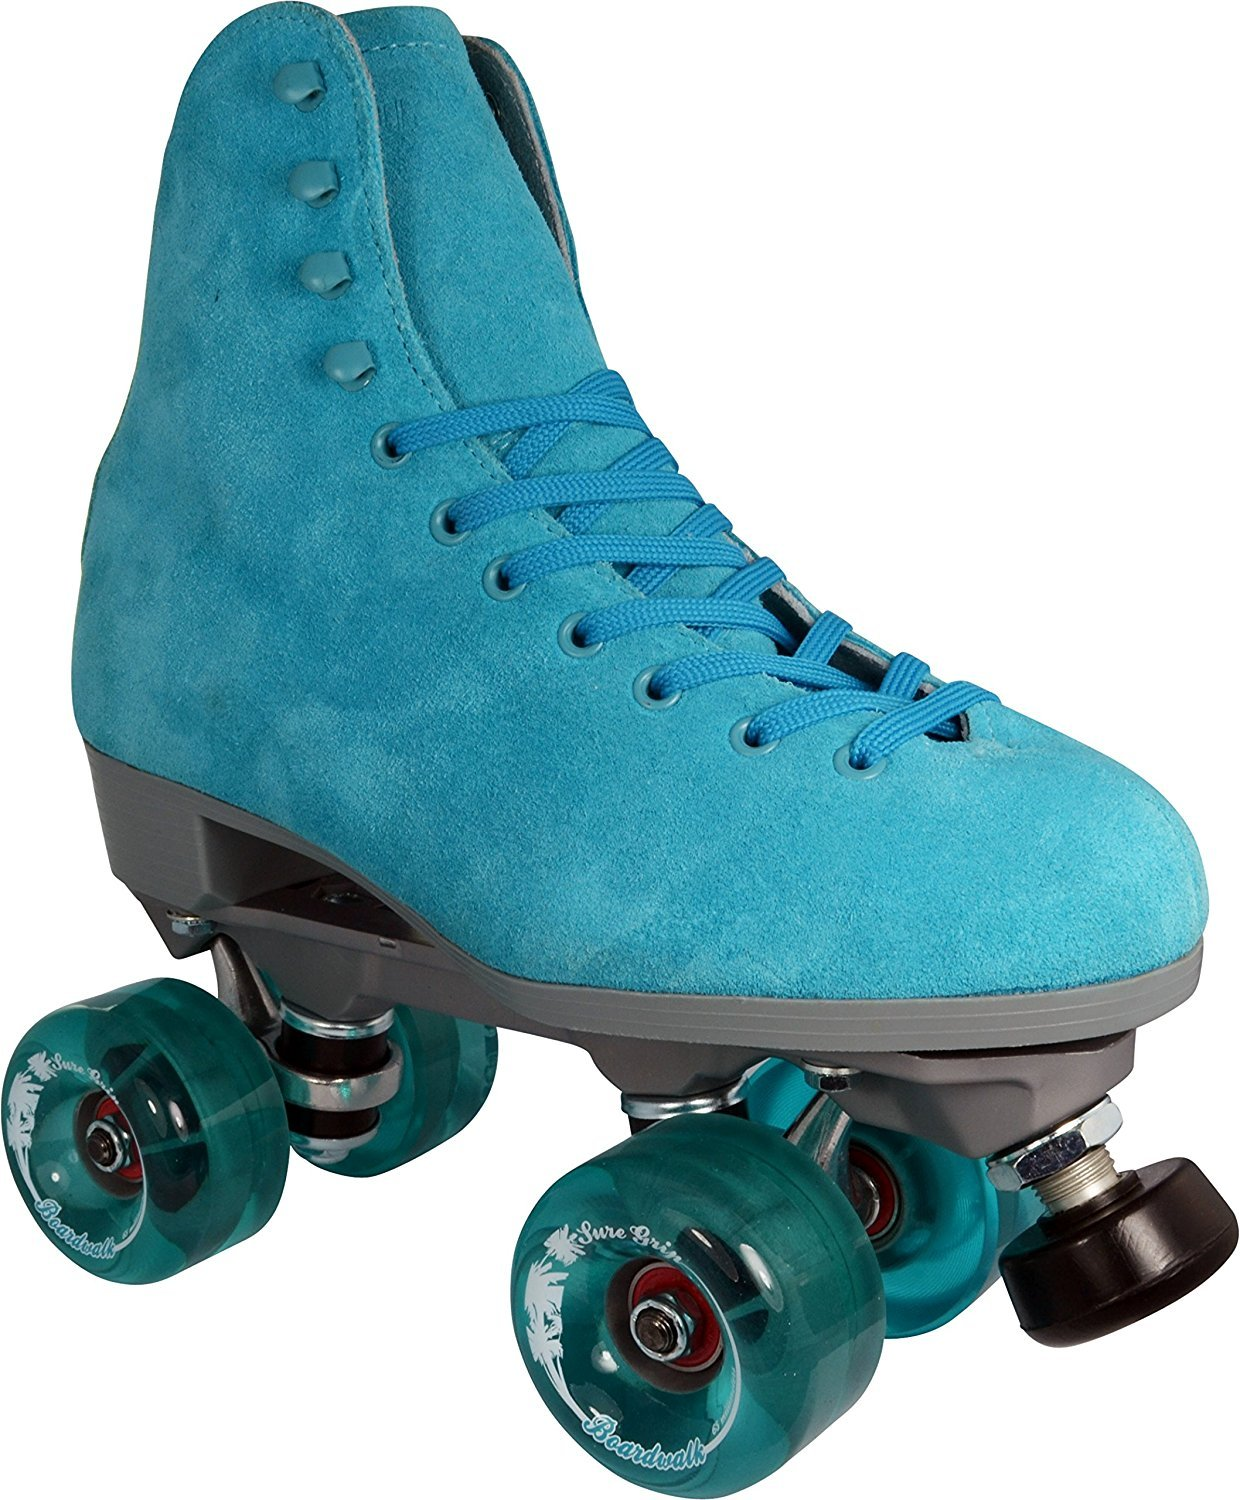 Sure-Grip Boardwalk Roller Skate Package -sz Mens 9 / Ladies 10 by Sure-Grip